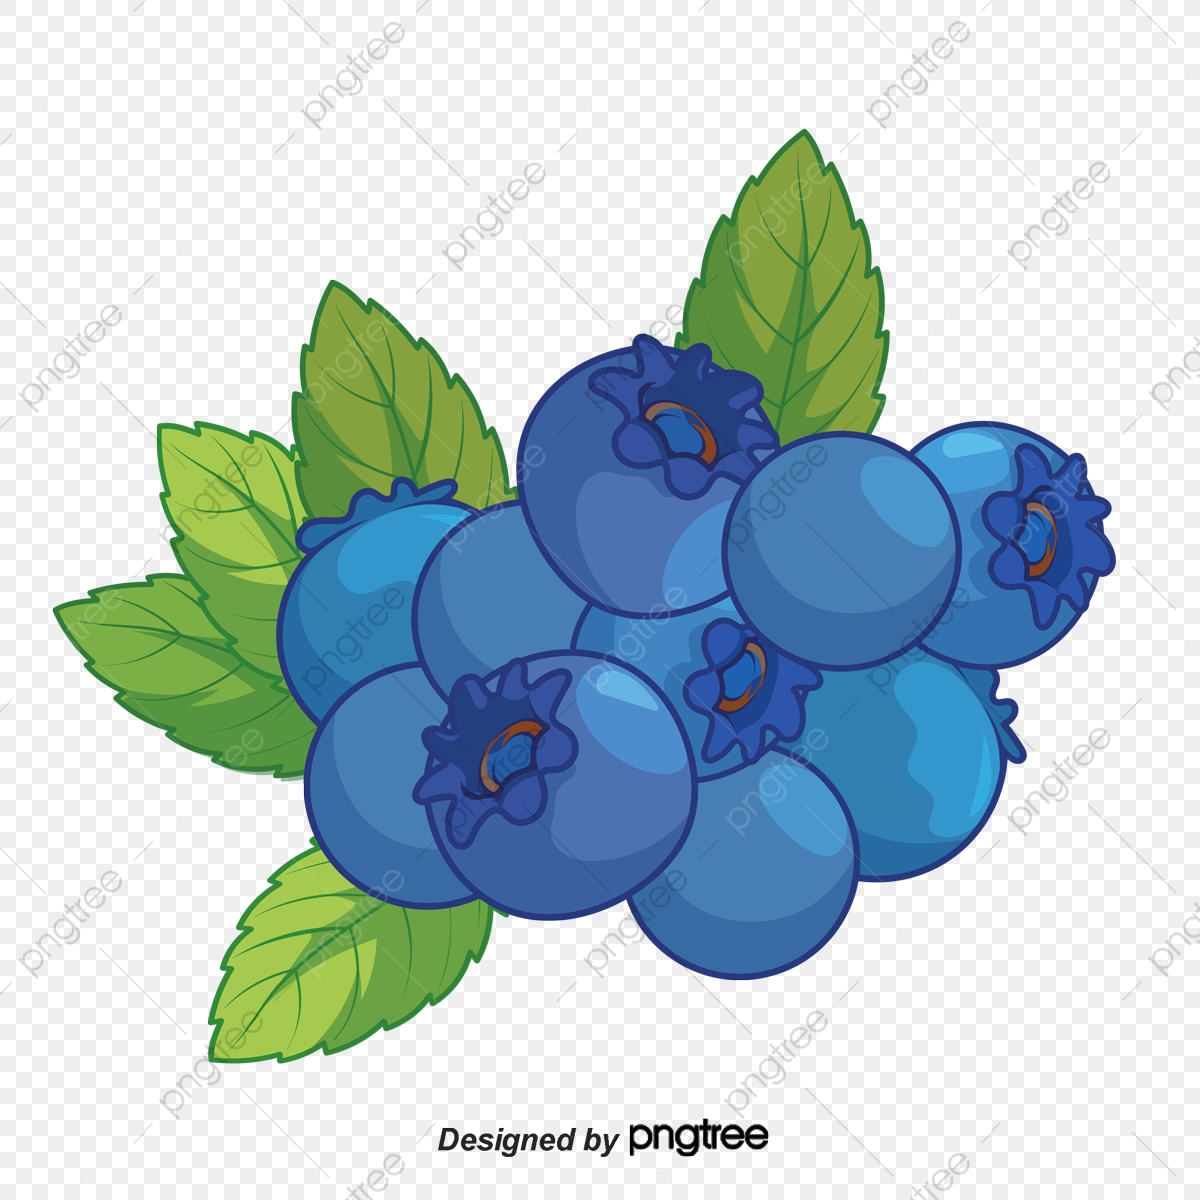 Fruit food png transparent. Blueberry clipart blueberry tree